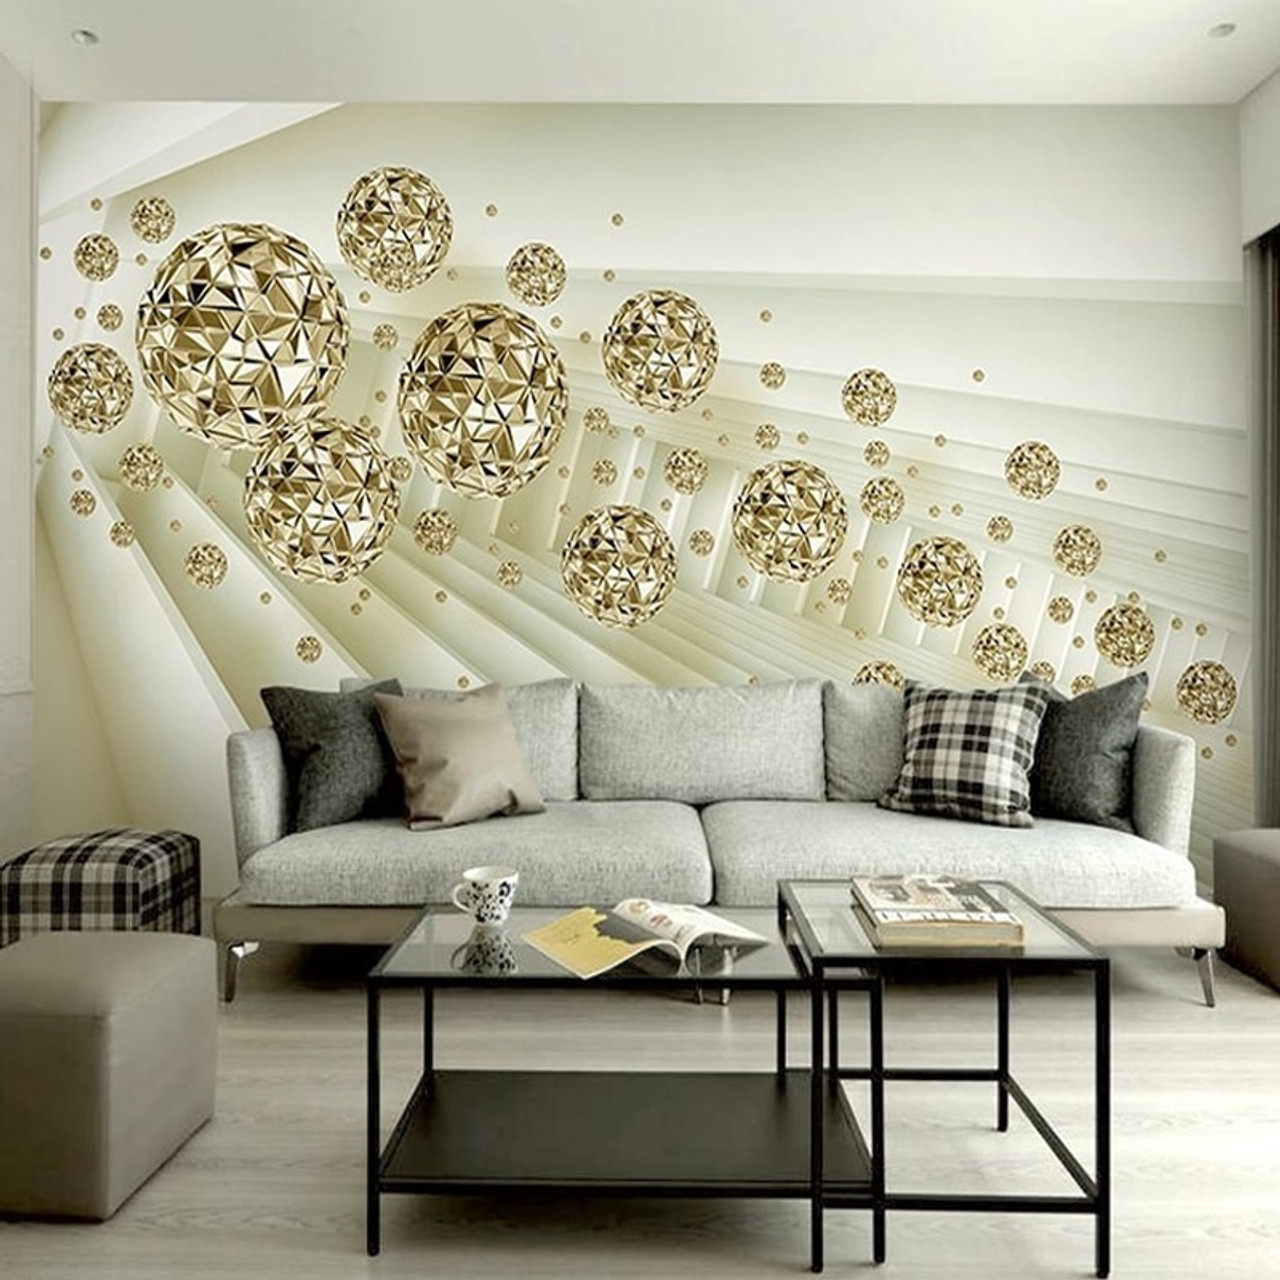 Custom Mural Wallpaper 3D Stereo Abstract Space Golden Ball Modern Fashion Interior Background Wall Decorative Painting